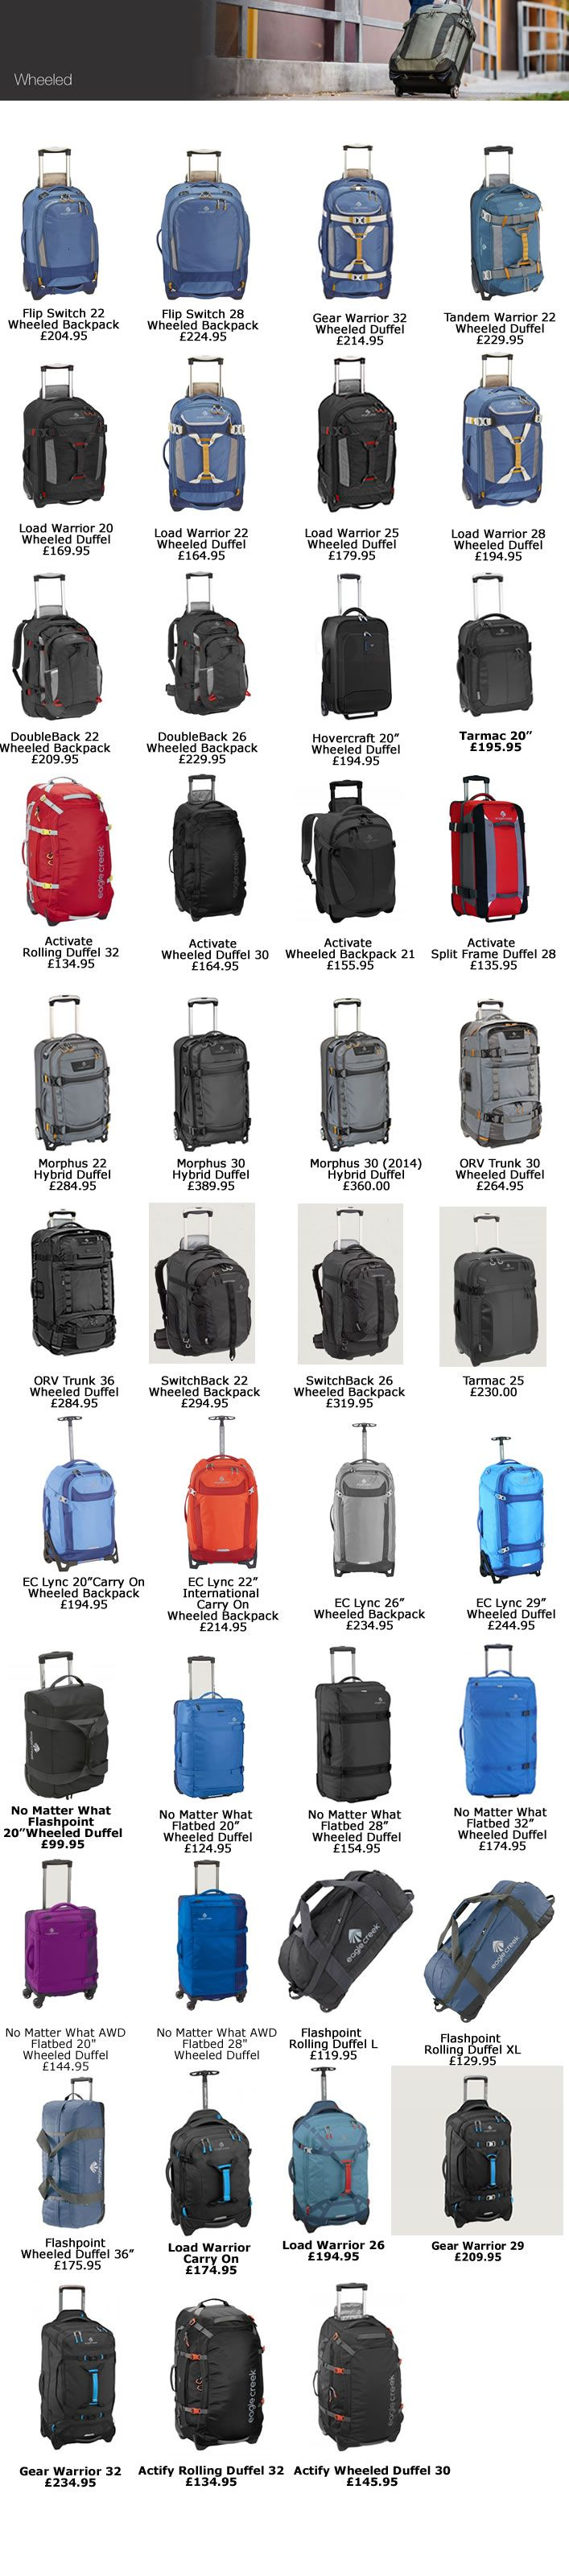 Eagle Creek Wheeled Luggage and Travel Gear : Eagle Creek UK : Eagle Creek Luggage : Eagle Creek Travel Gear ; Eagle Creek : Eagle Creek Pack It : Tarmac : Load Warrior : No Matter What : Double Back : Activate : Outdoor Gear